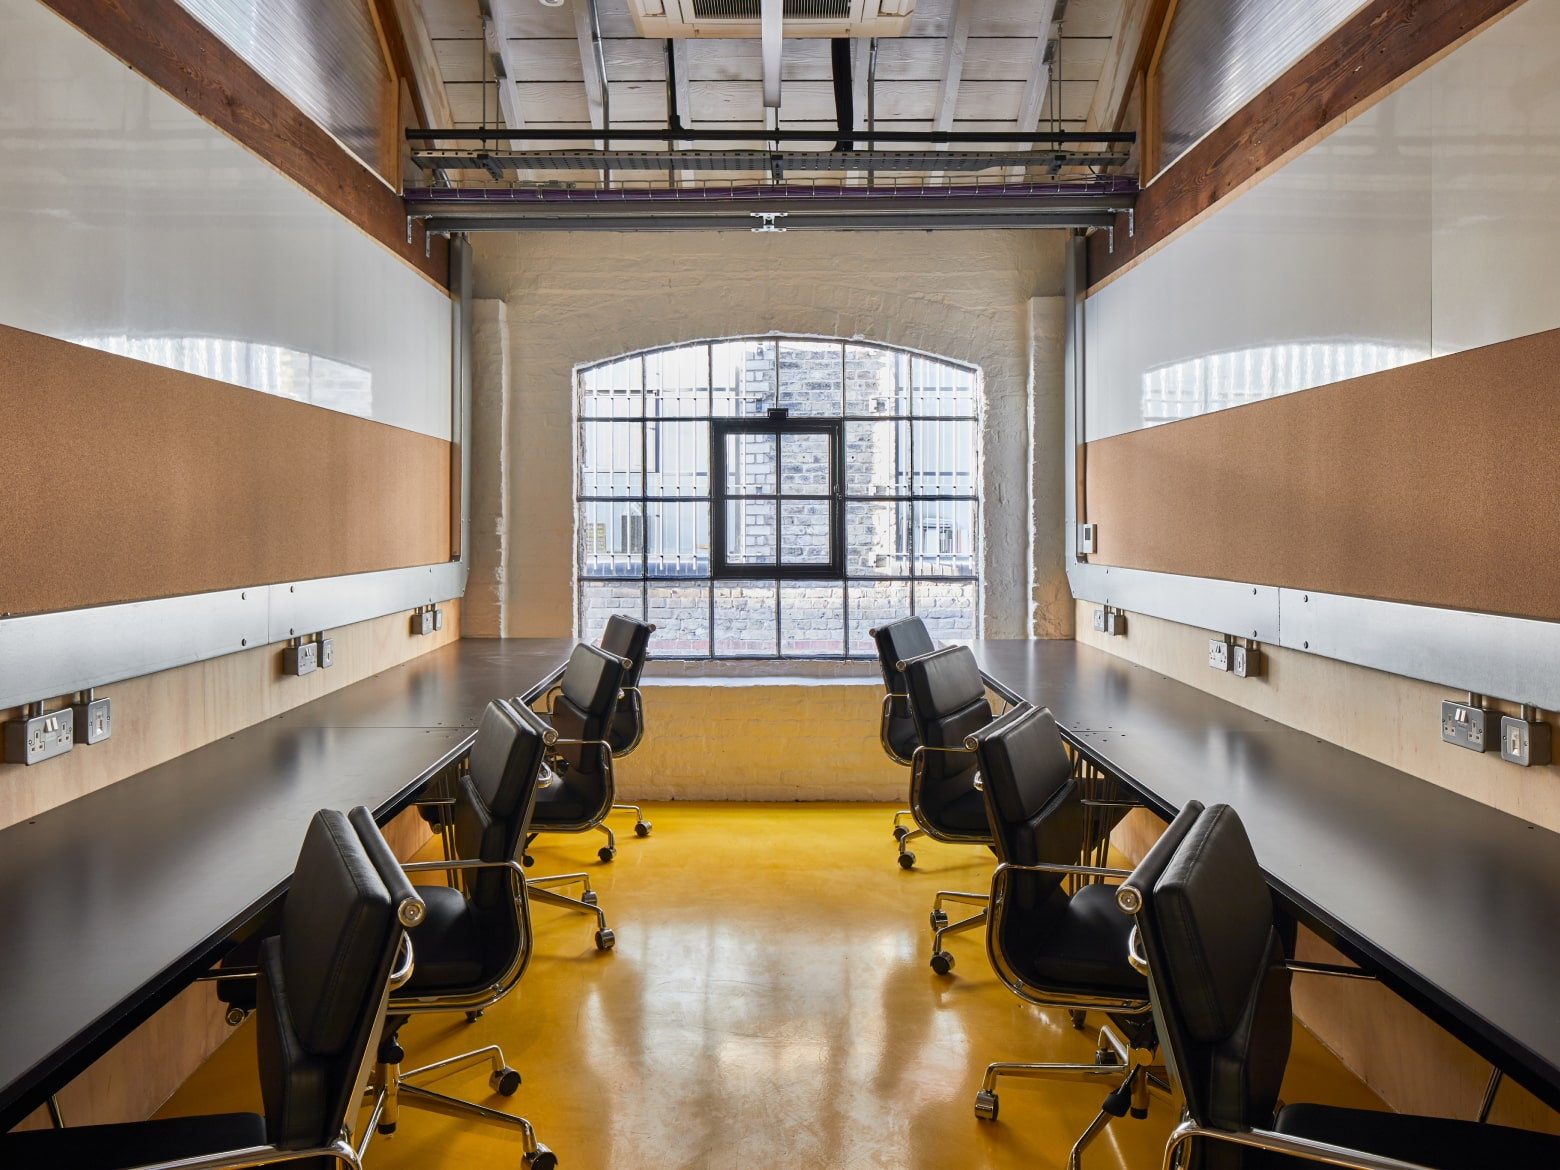 office space with leather chairs and desks